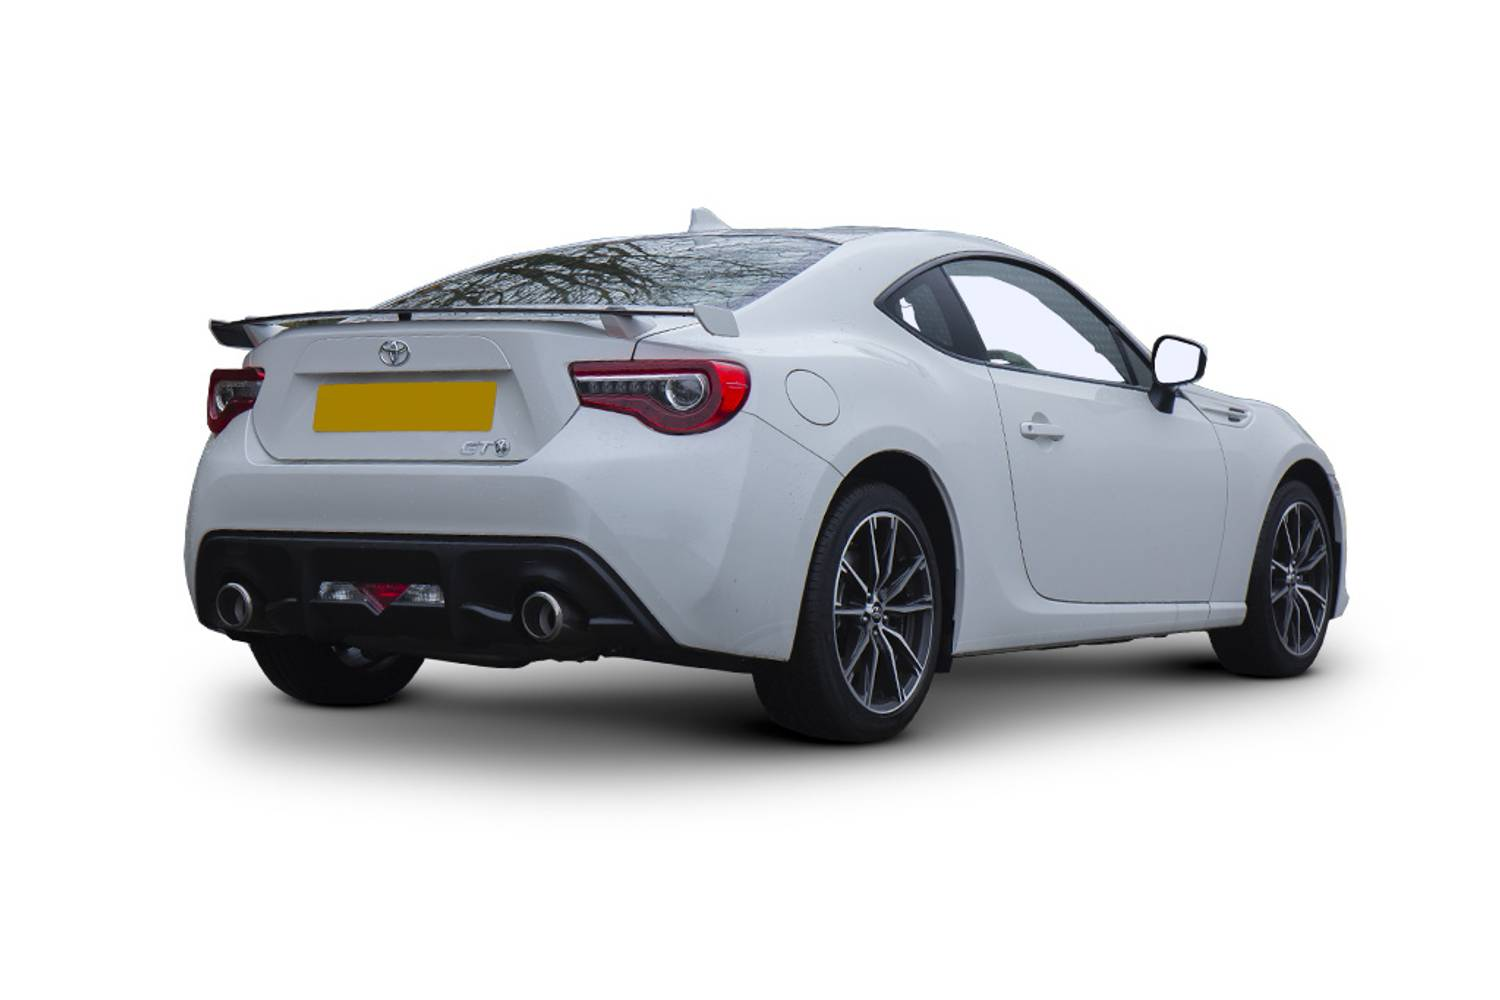 Toyota GT86 Coupe 2.0 D-4S 2dr Rear Three Quarter